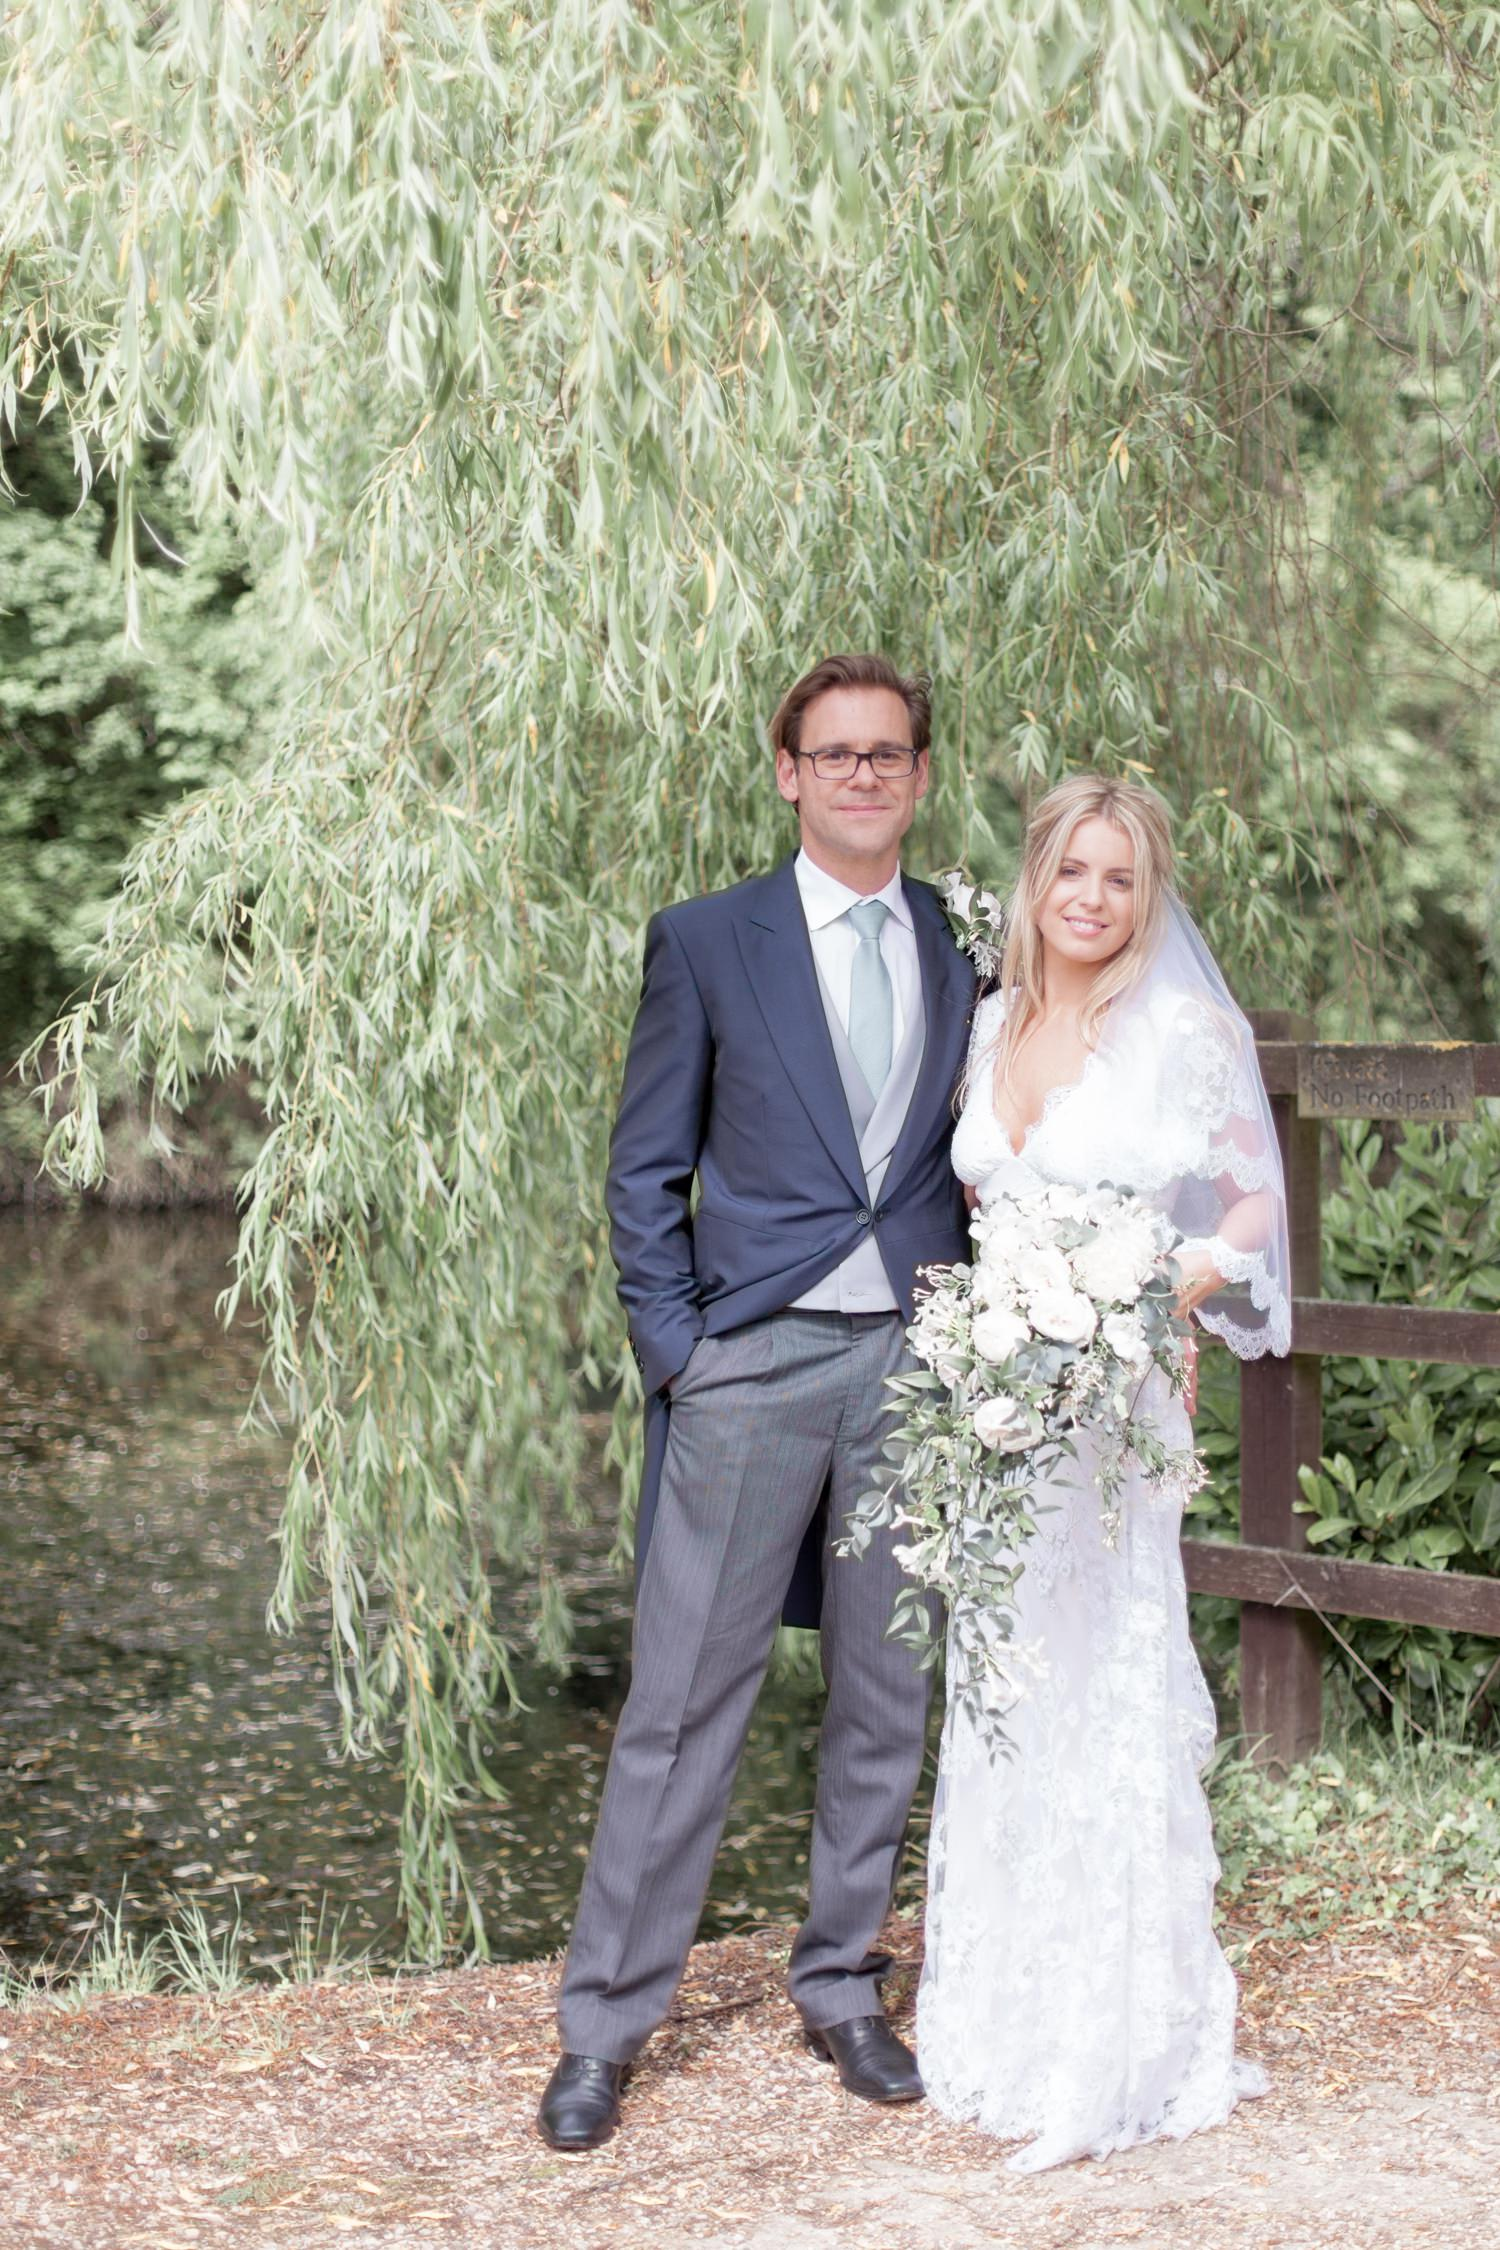 Emily & Jonathan's Cambridgeshire wedding - couple standing next to weeping willow